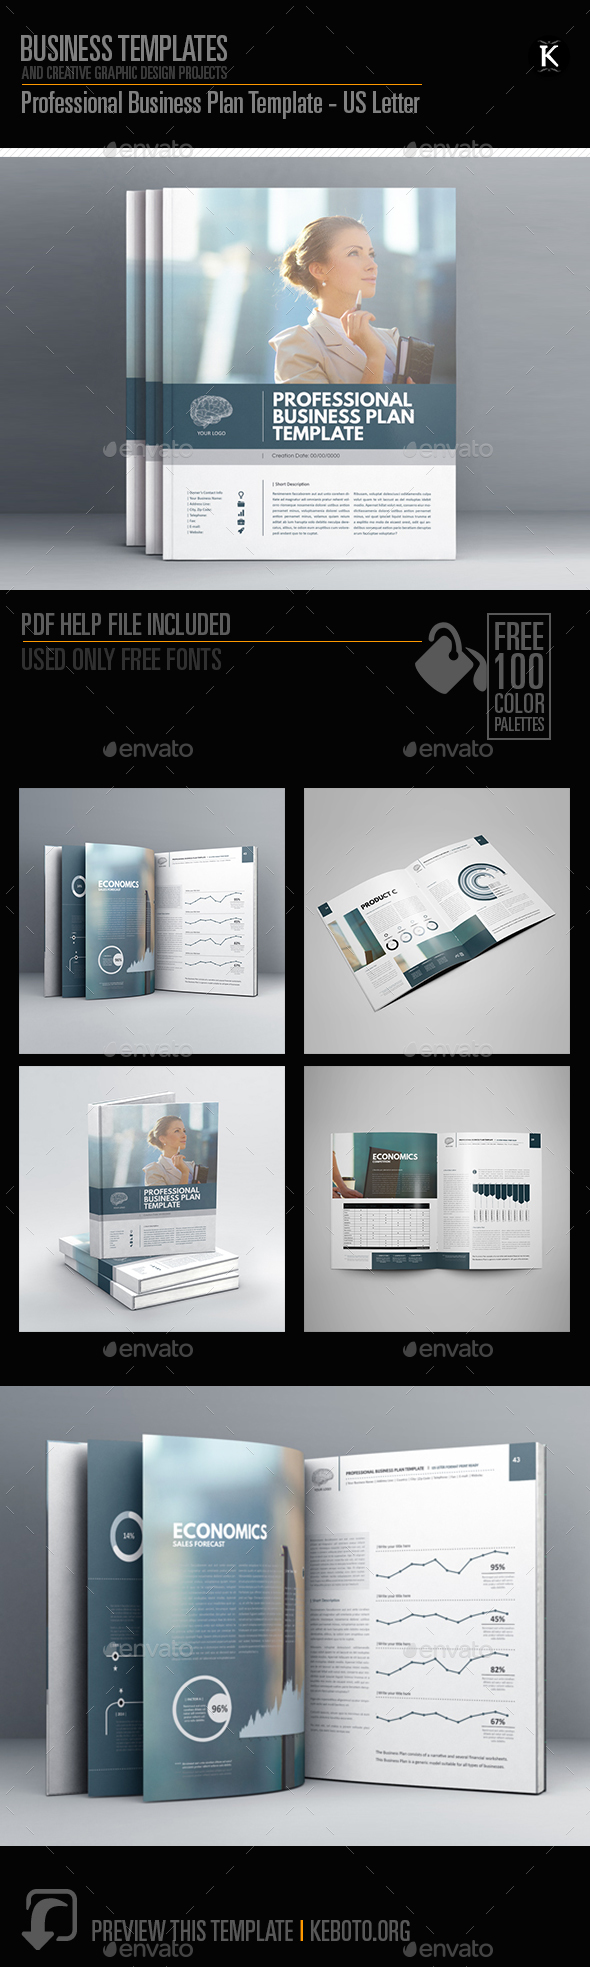 Professional business plan template us letter by keboto graphicriver professional business plan template us letter miscellaneous print templates flashek Gallery